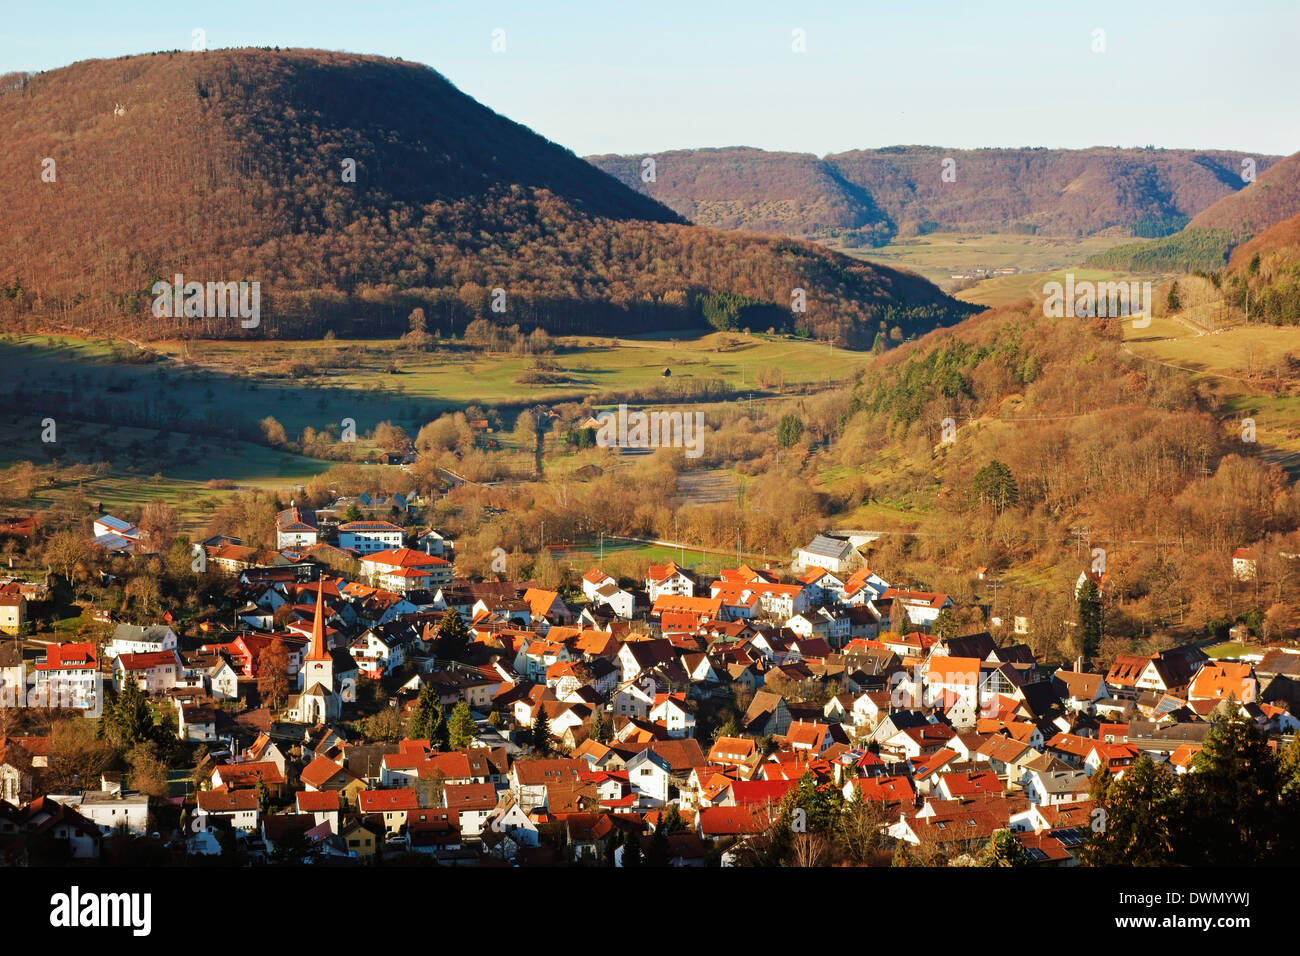 Bad Ueberkingen, Swabian Alb, Baden-Wurttemberg, Germany, Europe - Stock Image